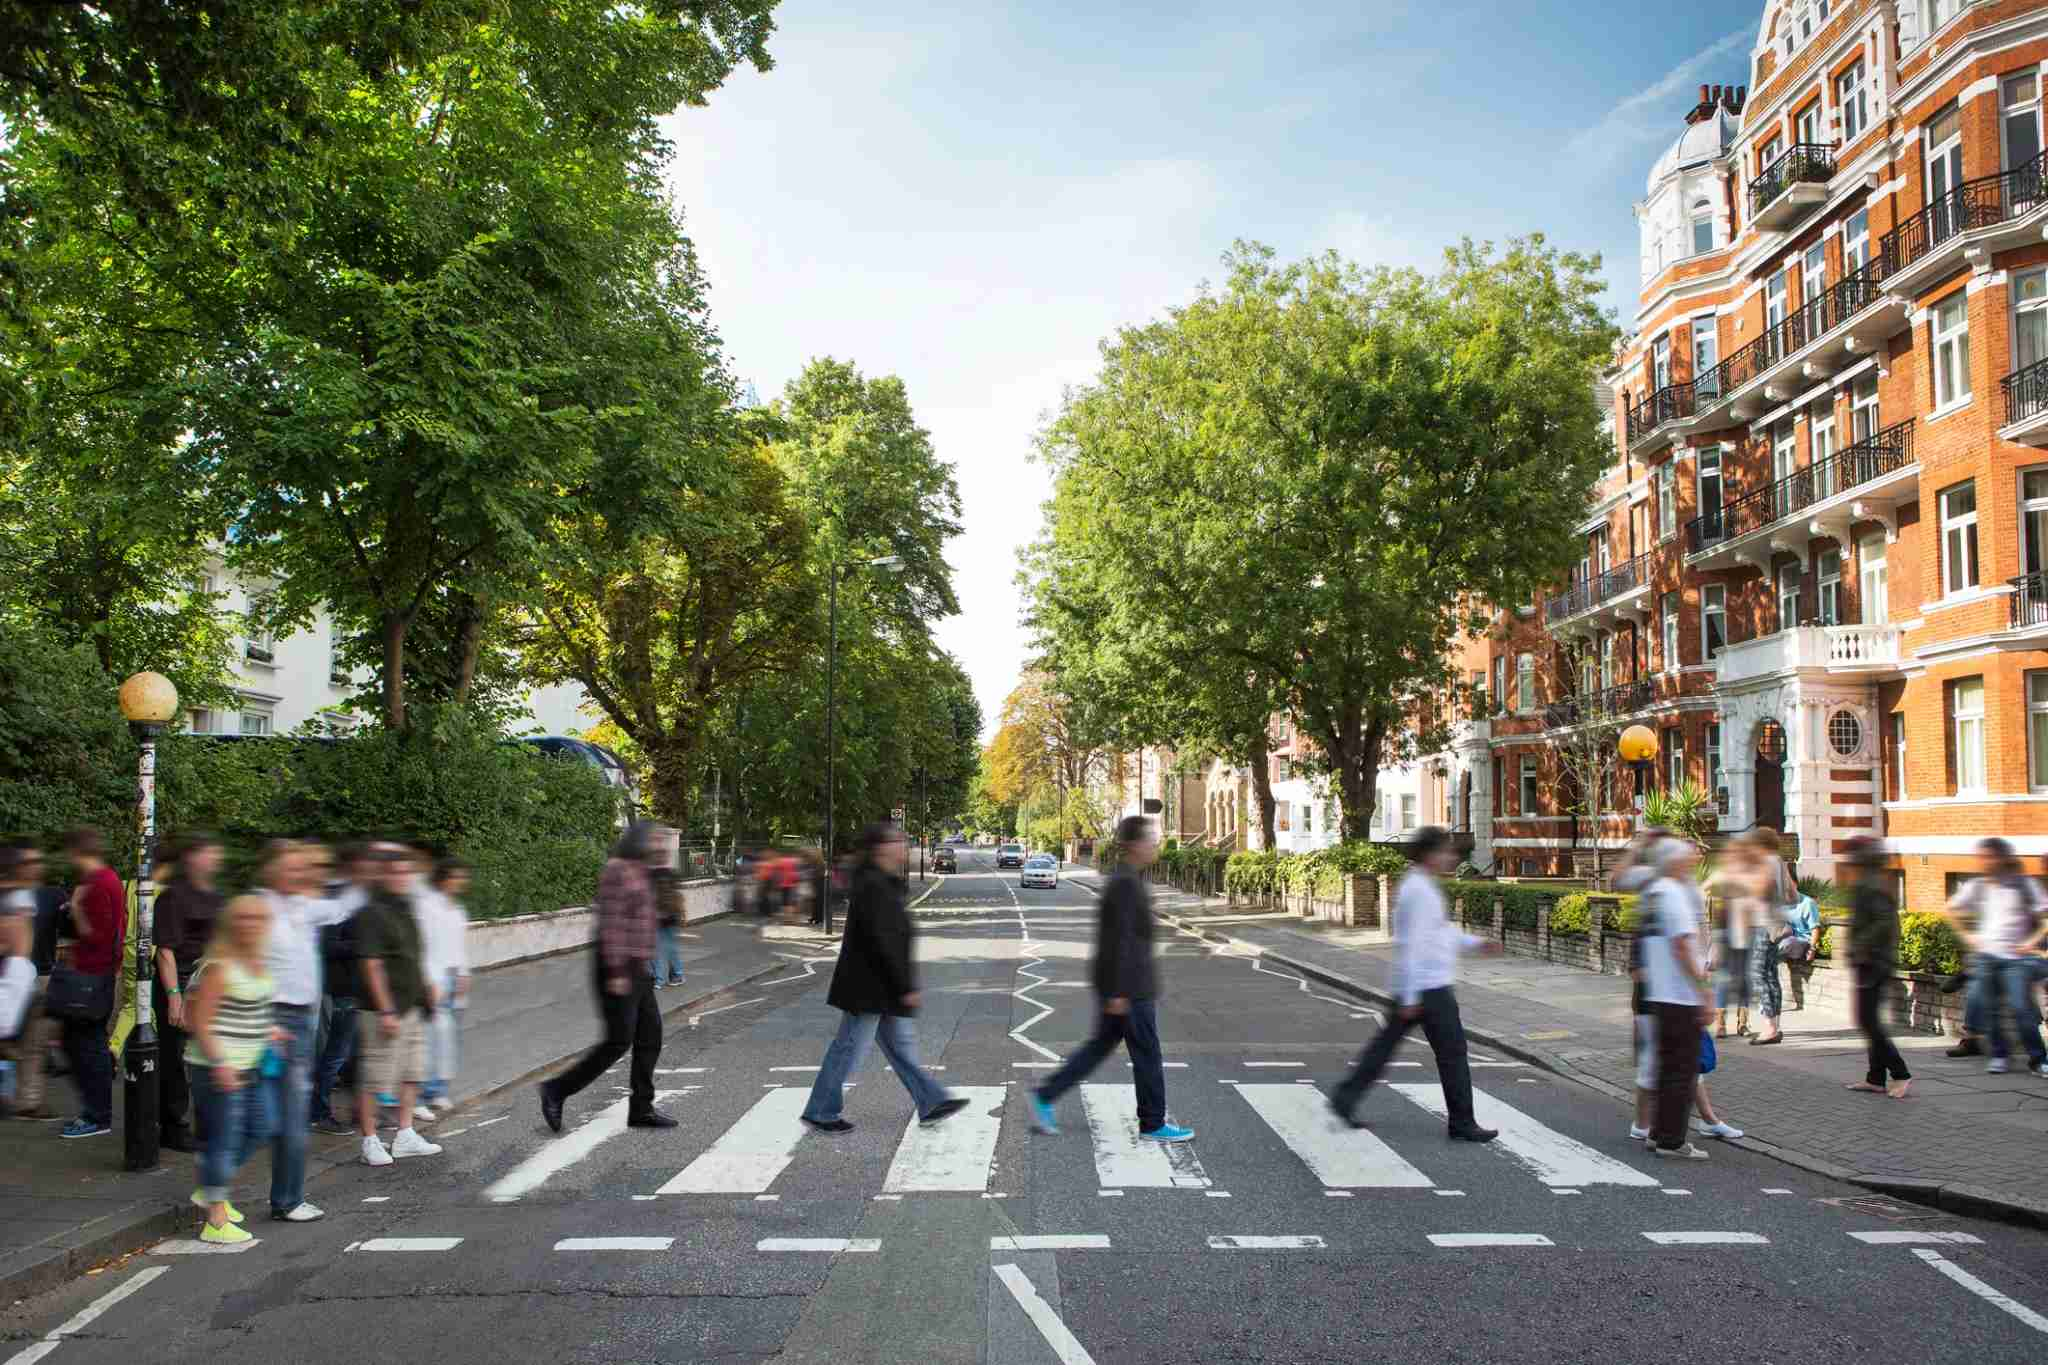 Take an iconic photo along Abbey Road on your next trip to London. (Photo by Richard Boll / Getty Images)